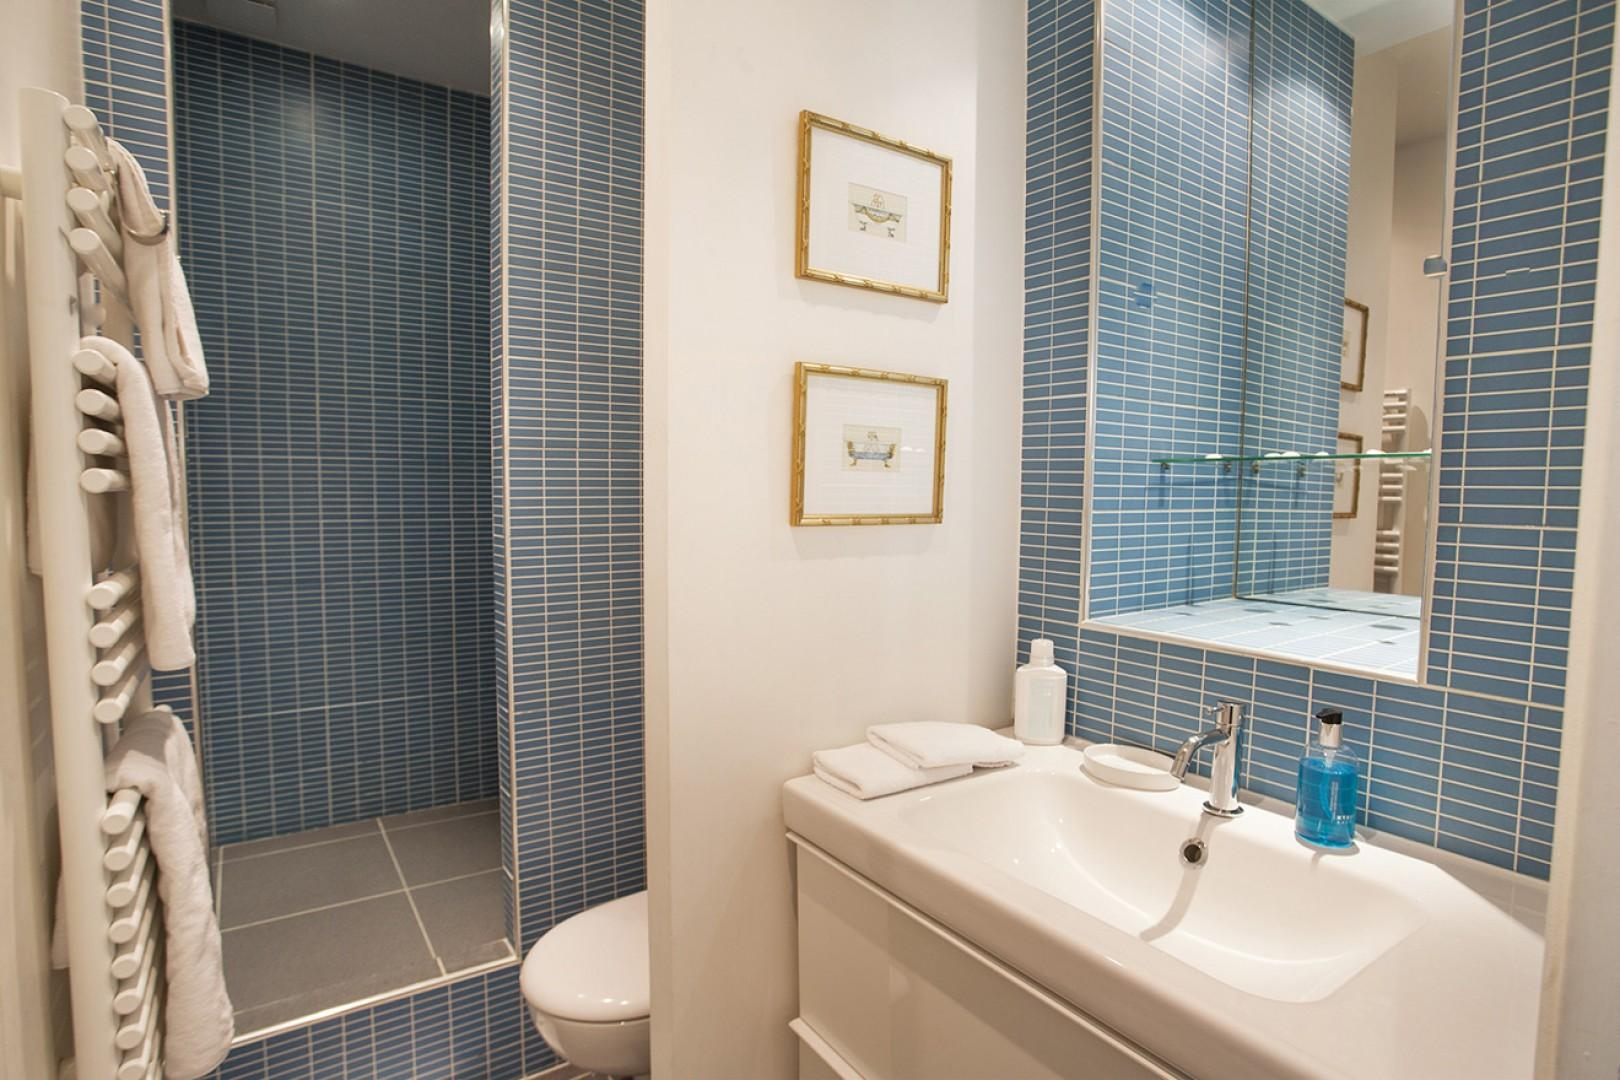 Start your day in the cozy bathroom, which features a heated towel rack for extra comfort.